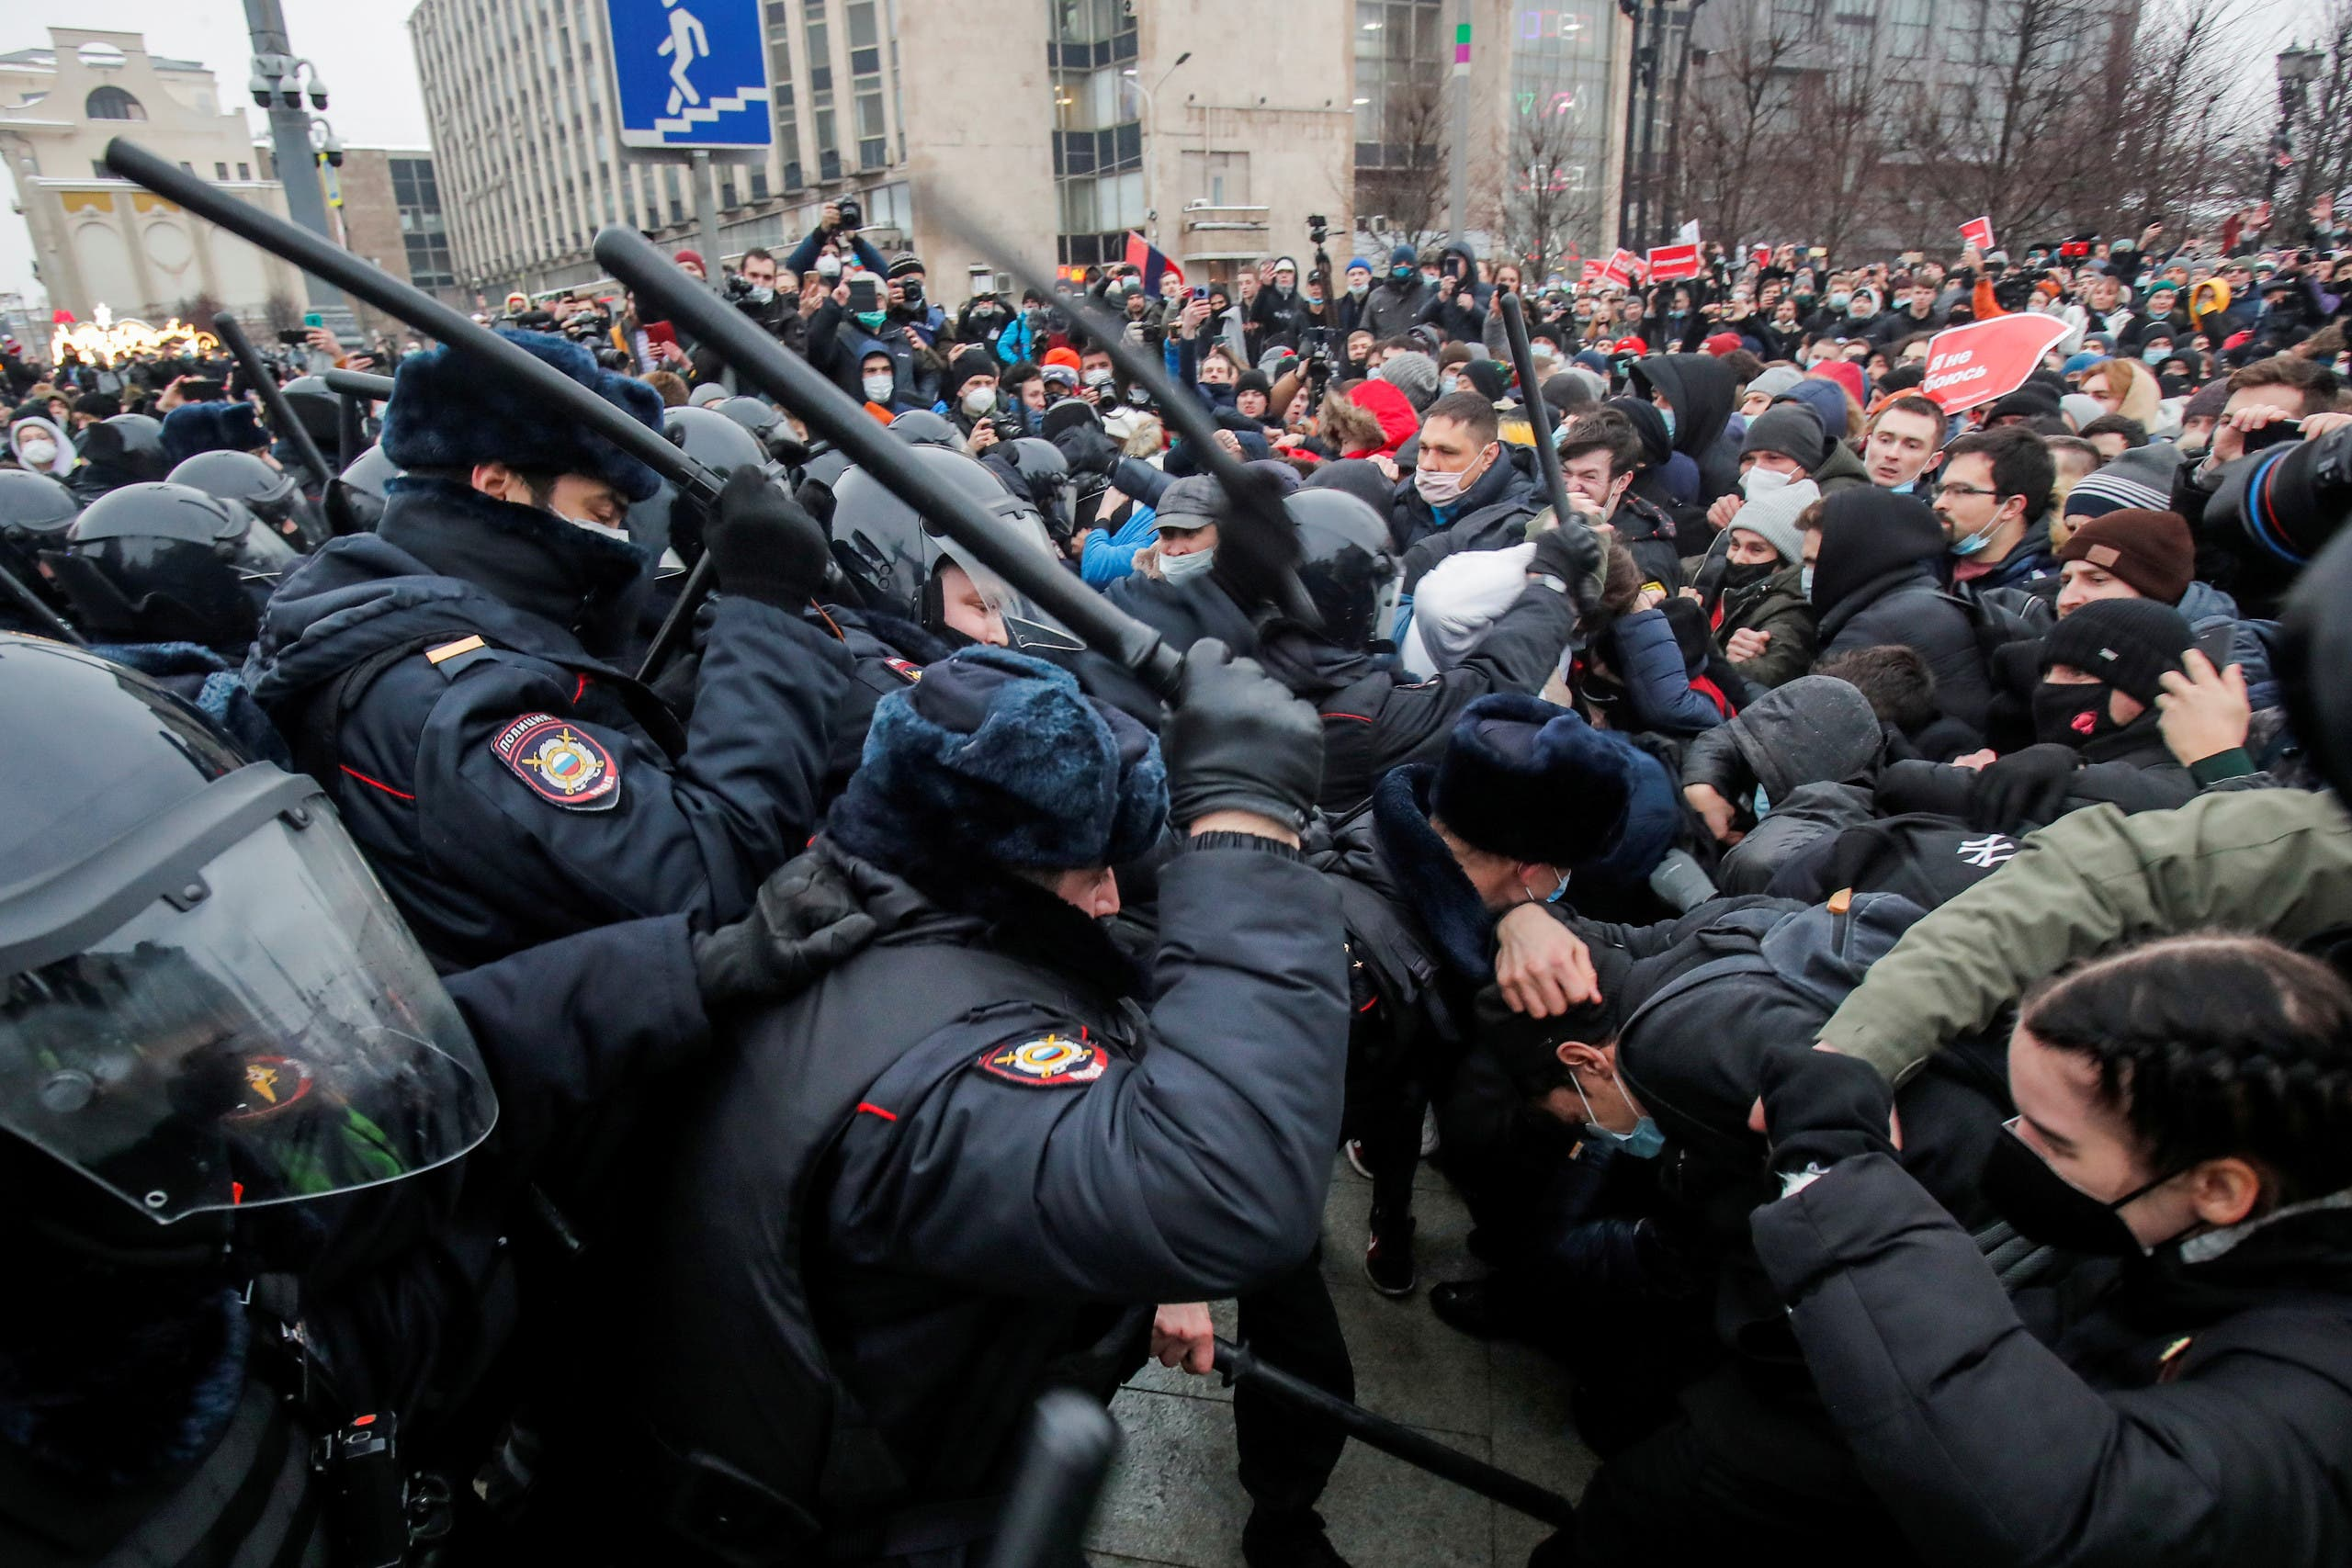 Law enforcement officers clash with participants during a rally in support of jailed Russian opposition leader Alexei Navalny in Moscow, Russia January 23, 2021. (Reuters)